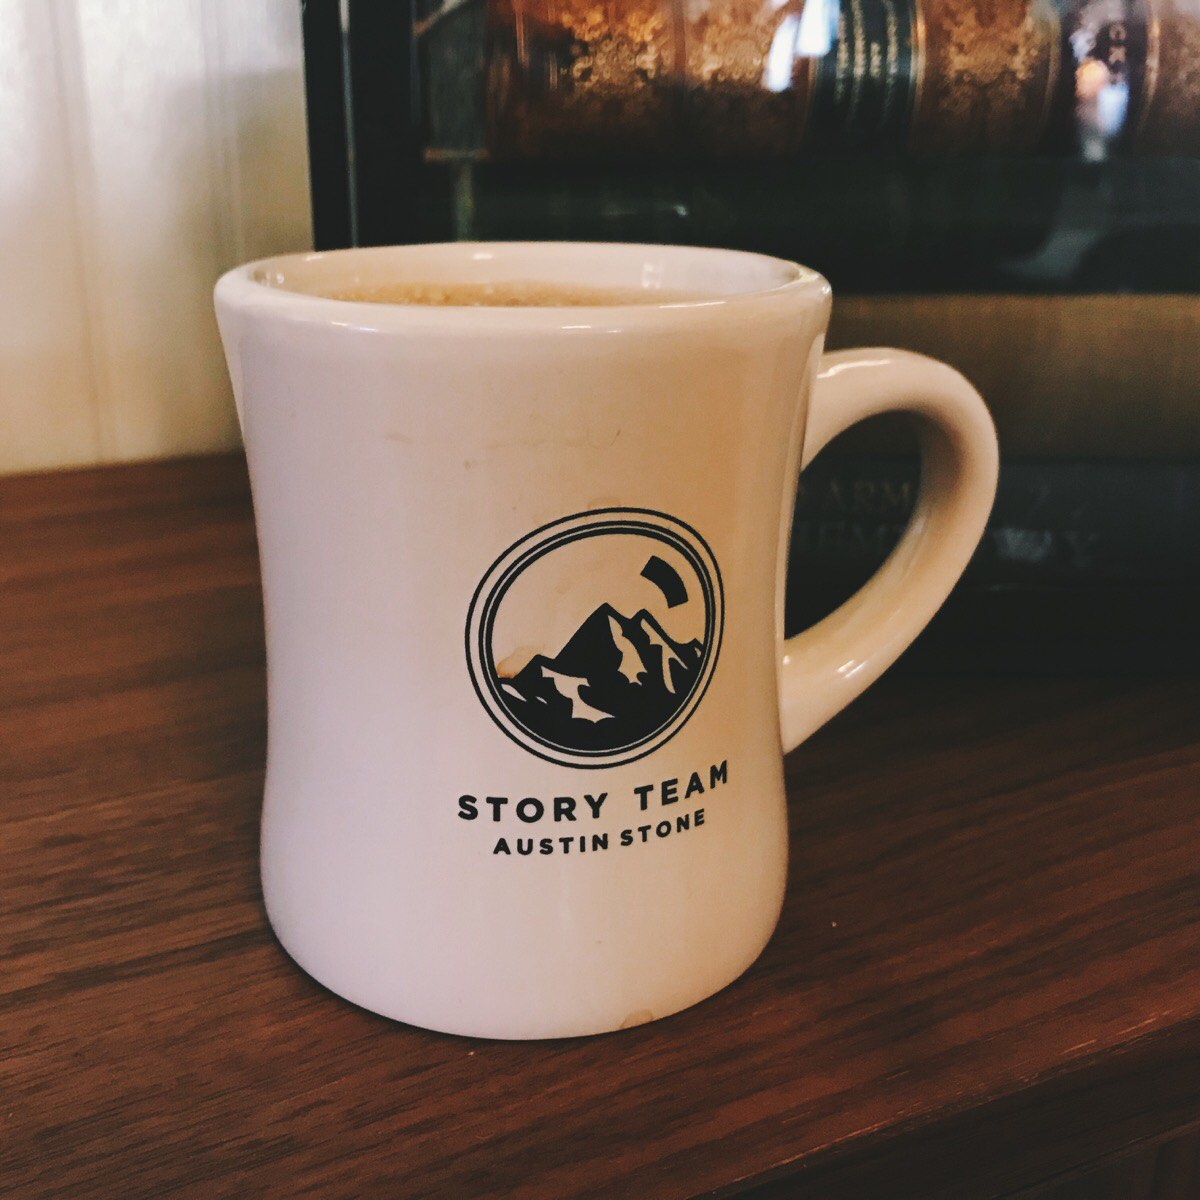 My Story Team coffee mug